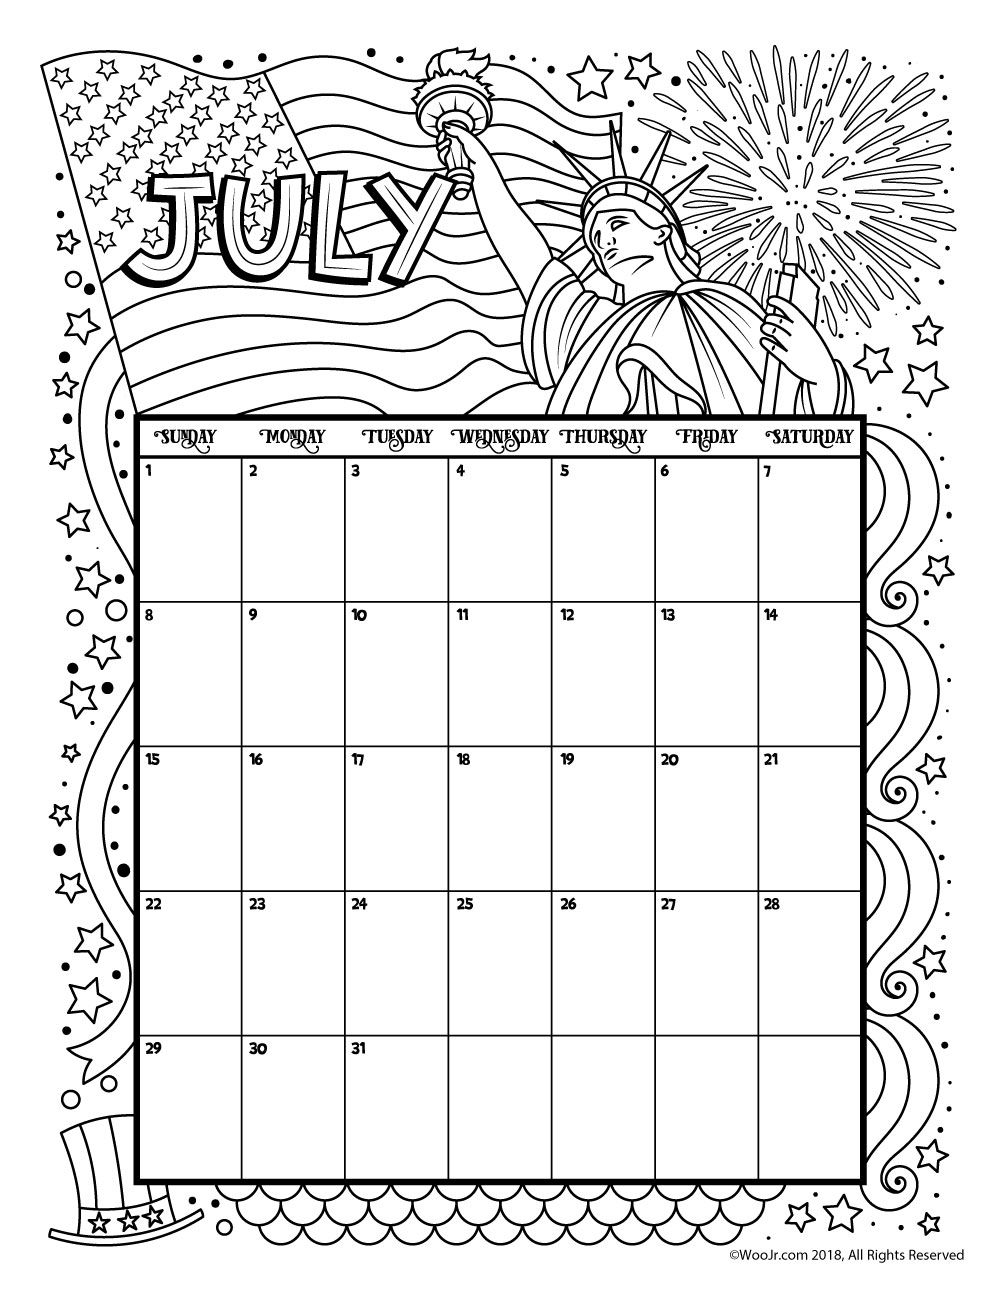 July 2018 Coloring Calendar Page | Products I Love | Pinterest ...